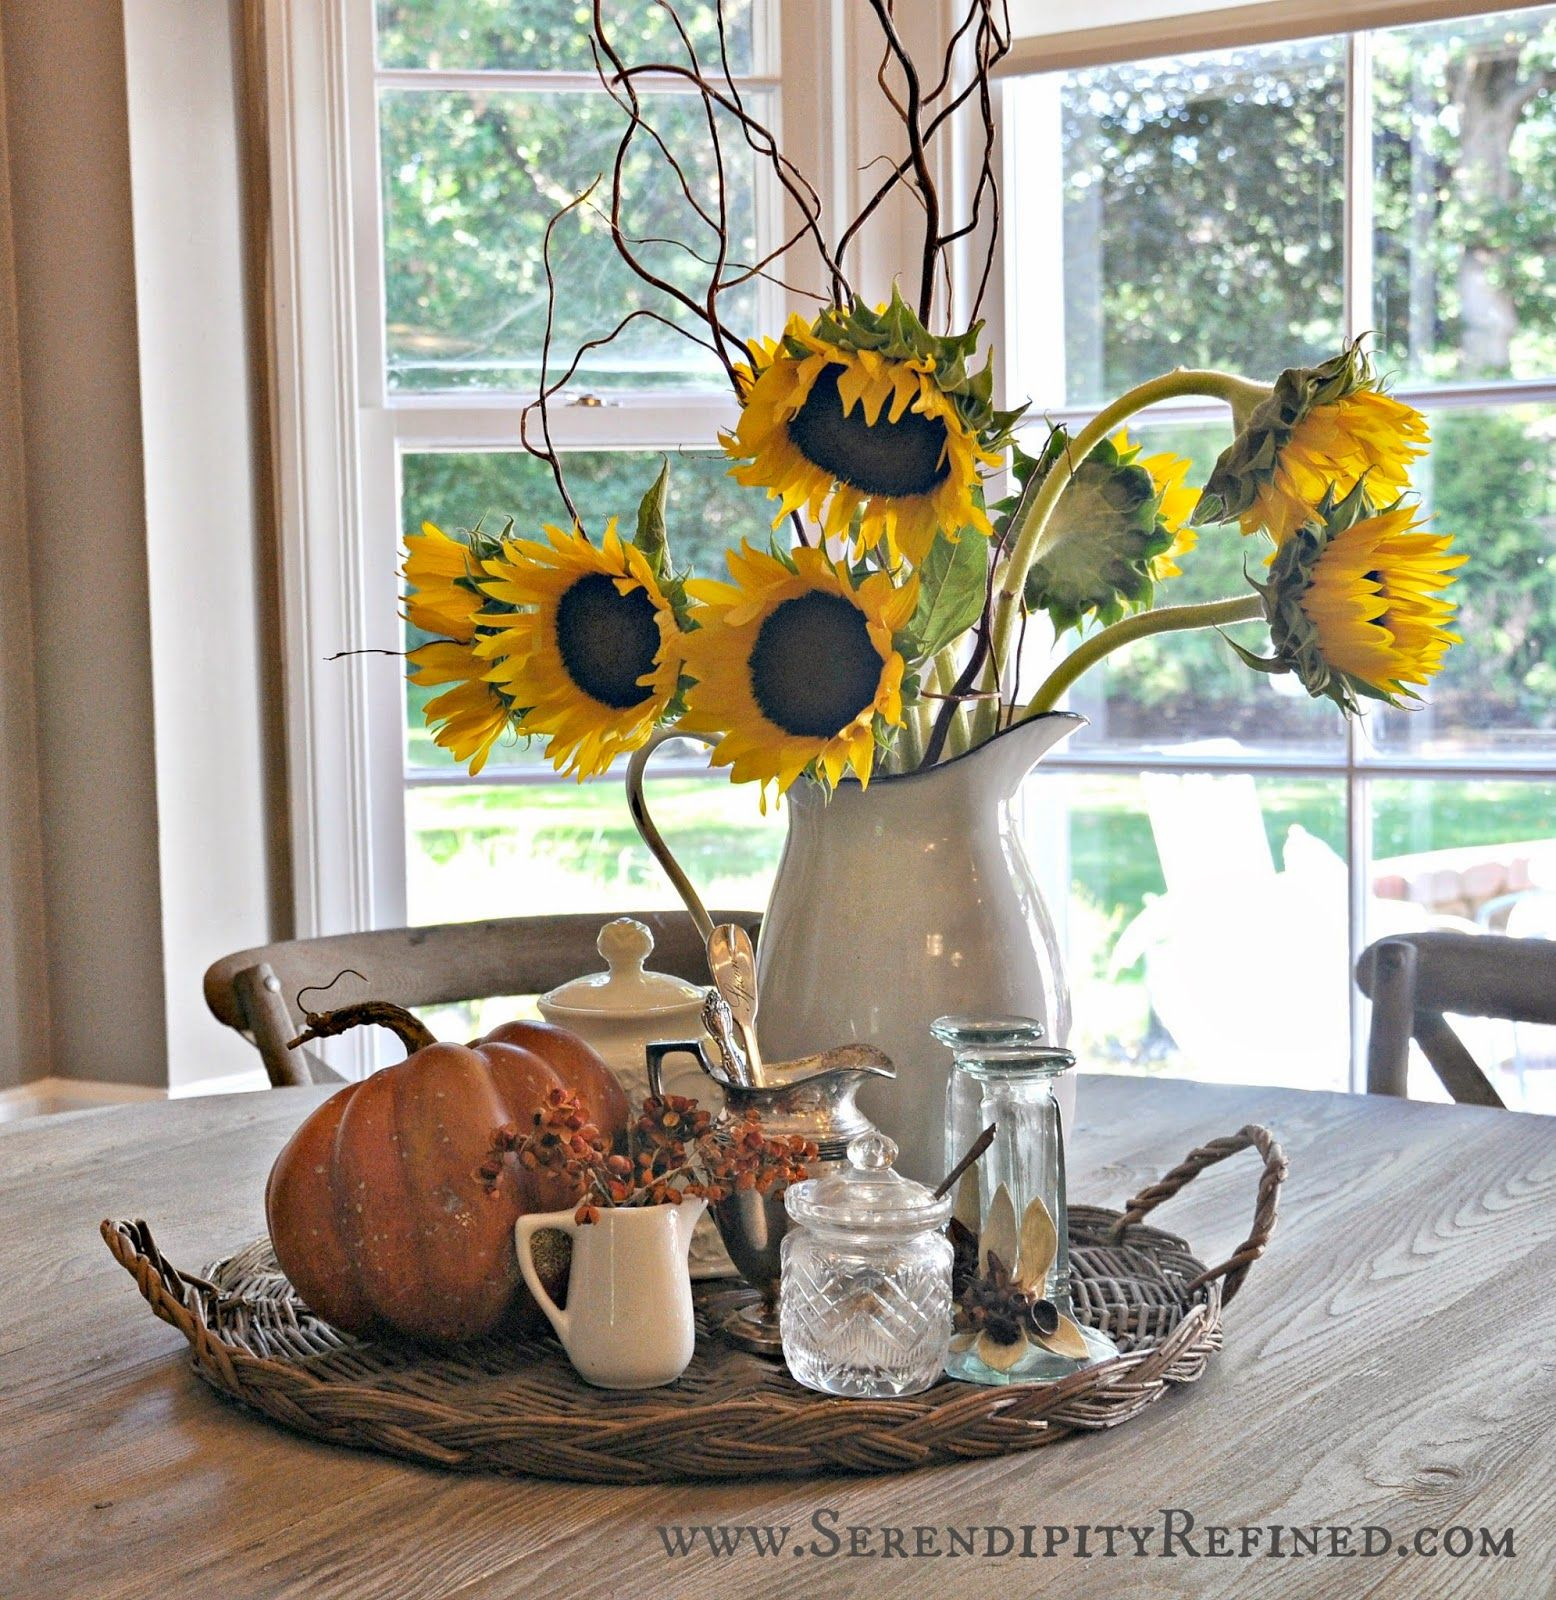 Kitchen Table Centerpiece Ideas For Everyday Part - 17: Serendipity Refined: Inside The French Farmhouse: Fall Decorating With  Pumpkins, Pinecones And Bittersweet · Kitchen CenterpieceFall Table ...